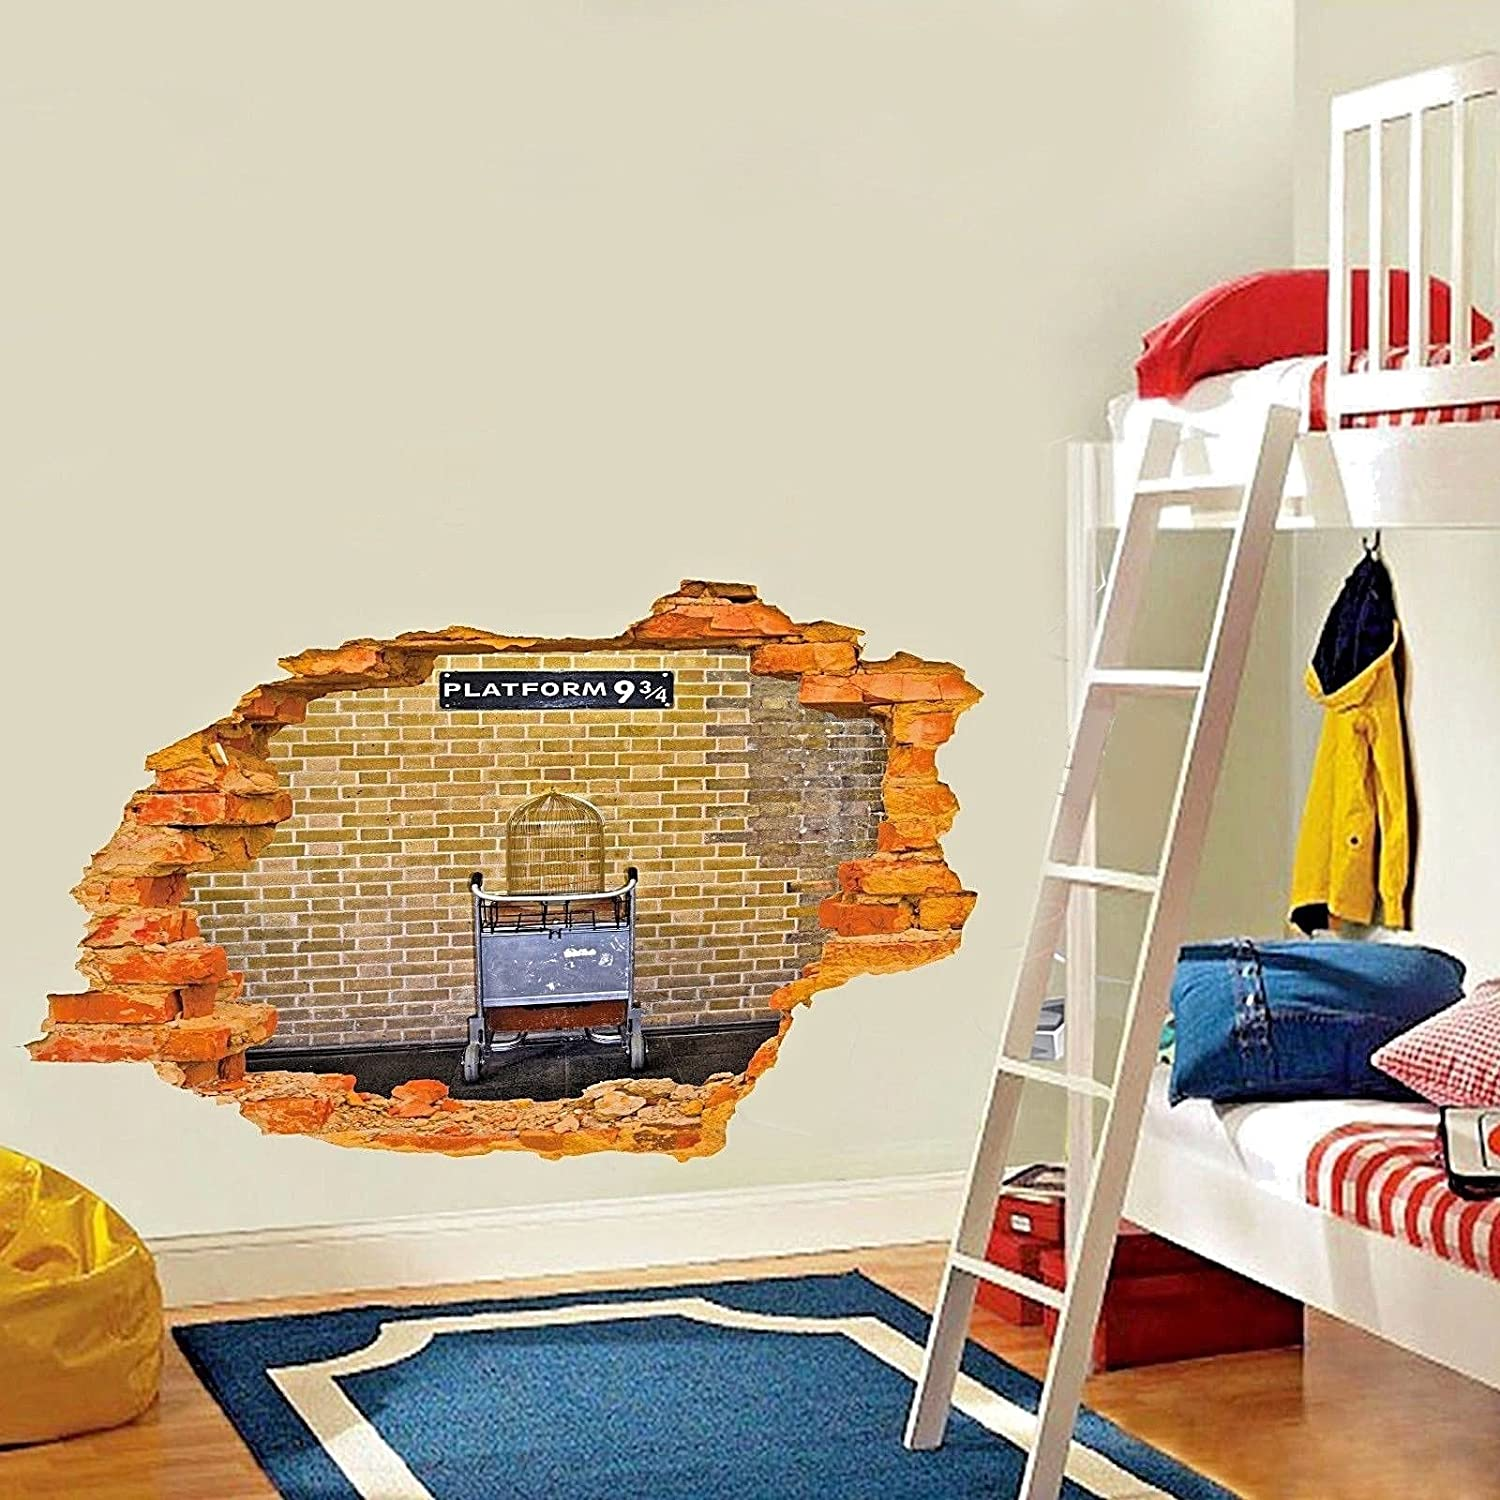 Wall Sticker Wall decor for Bedroom // Living Room // Kids Room Harry Potter Platform 9 3//4 Self Adhesive Vinyl Decal Peel and Stick DIY - Broken Wall // Hole in the Wall // Smashed Wall 3D Look